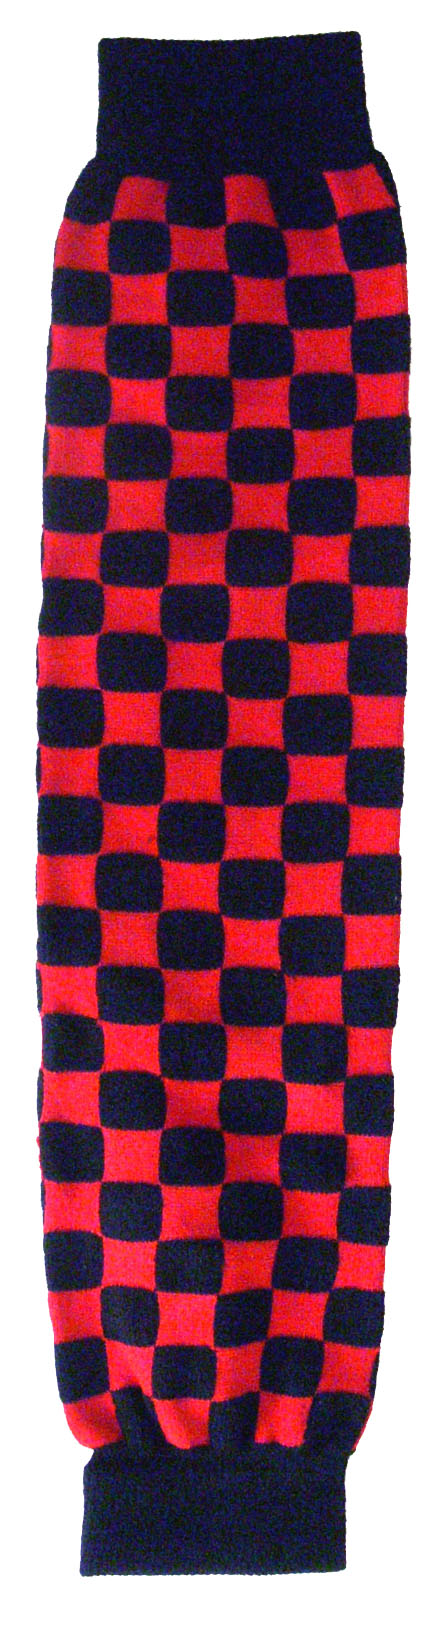 LEG WARMER LEGW -2    Red Checkers